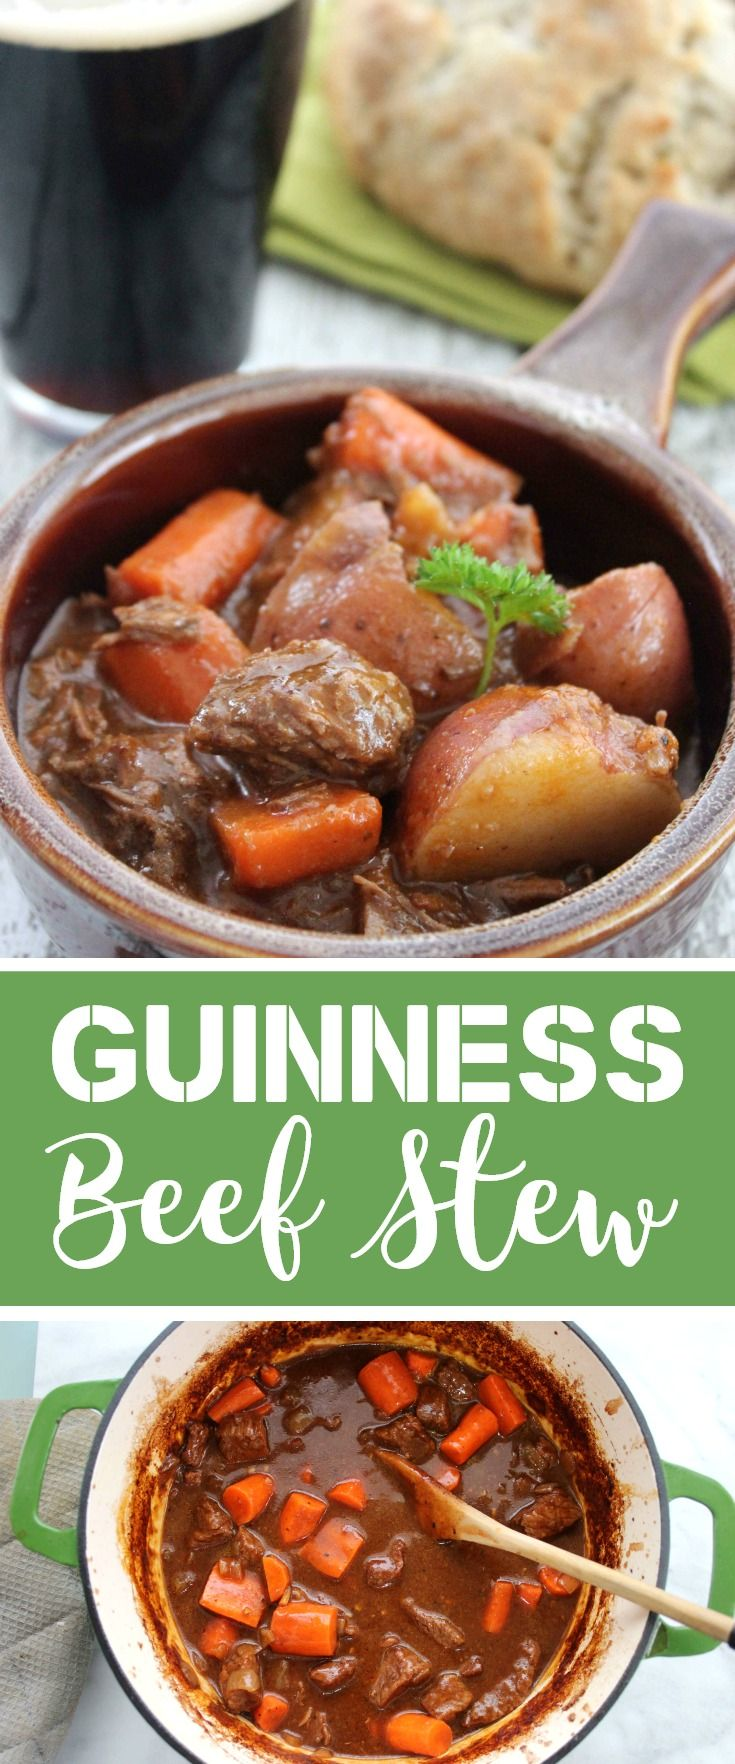 Hearty & Flavorful Guinness Beef Stew Recipe #stpatricksday